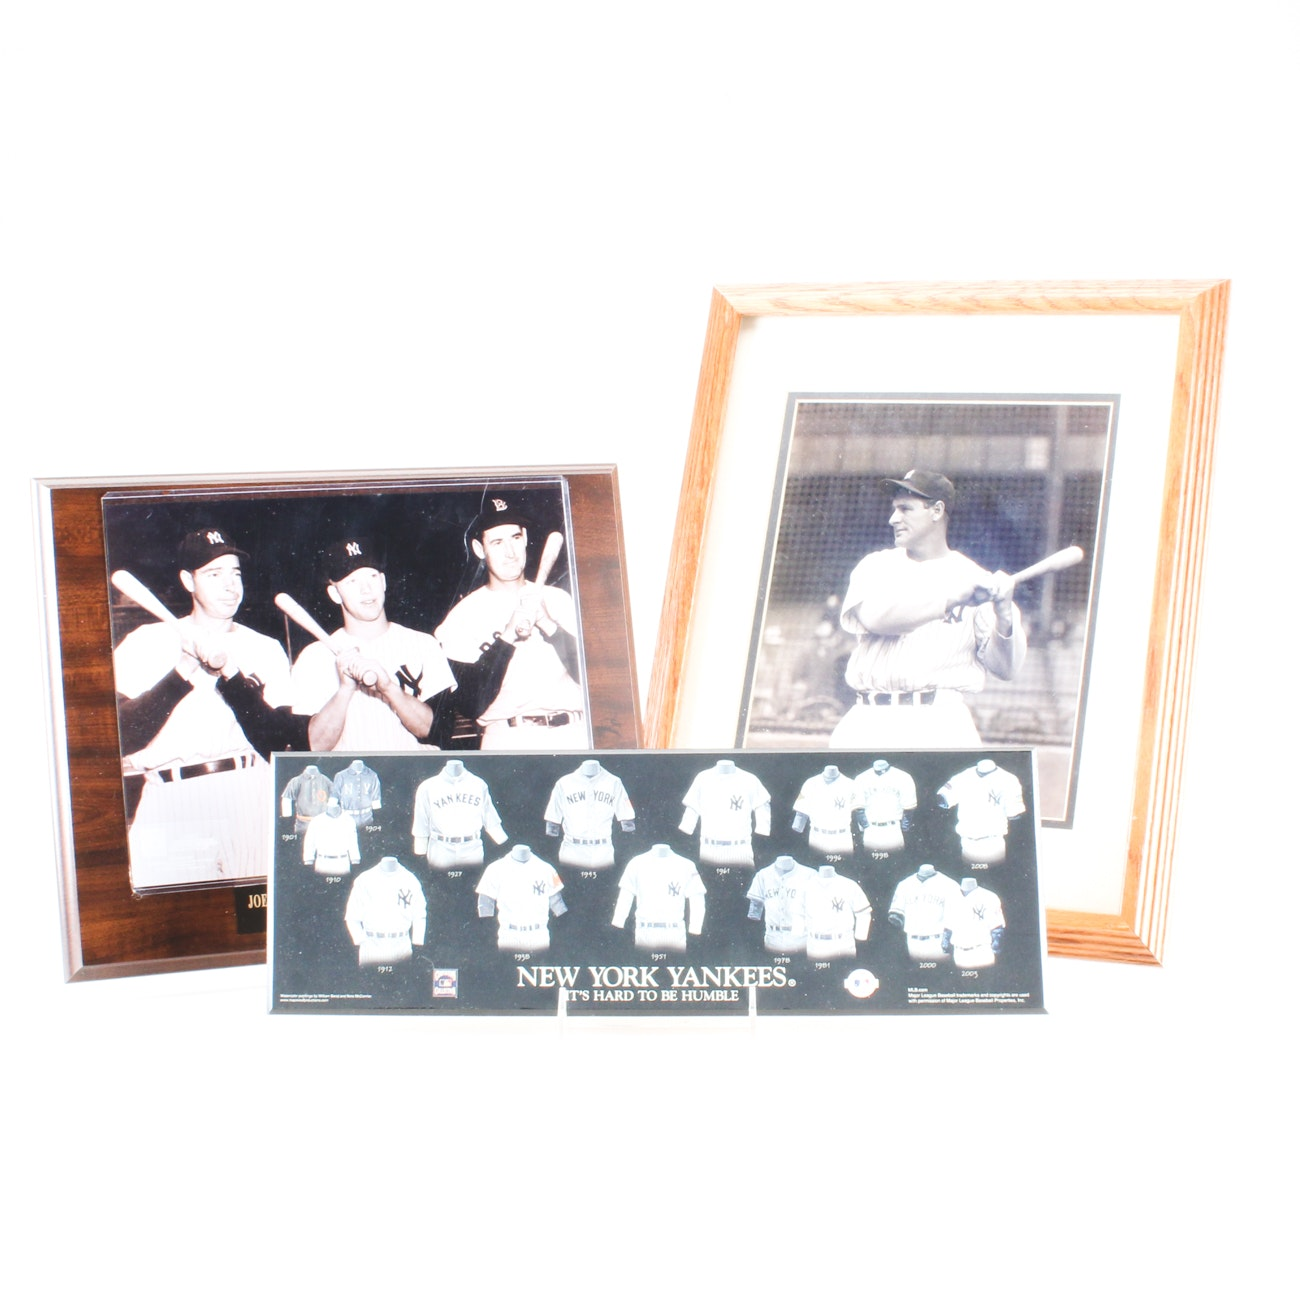 New York Yankees Collectibles Including Mantle, Gehrig and More